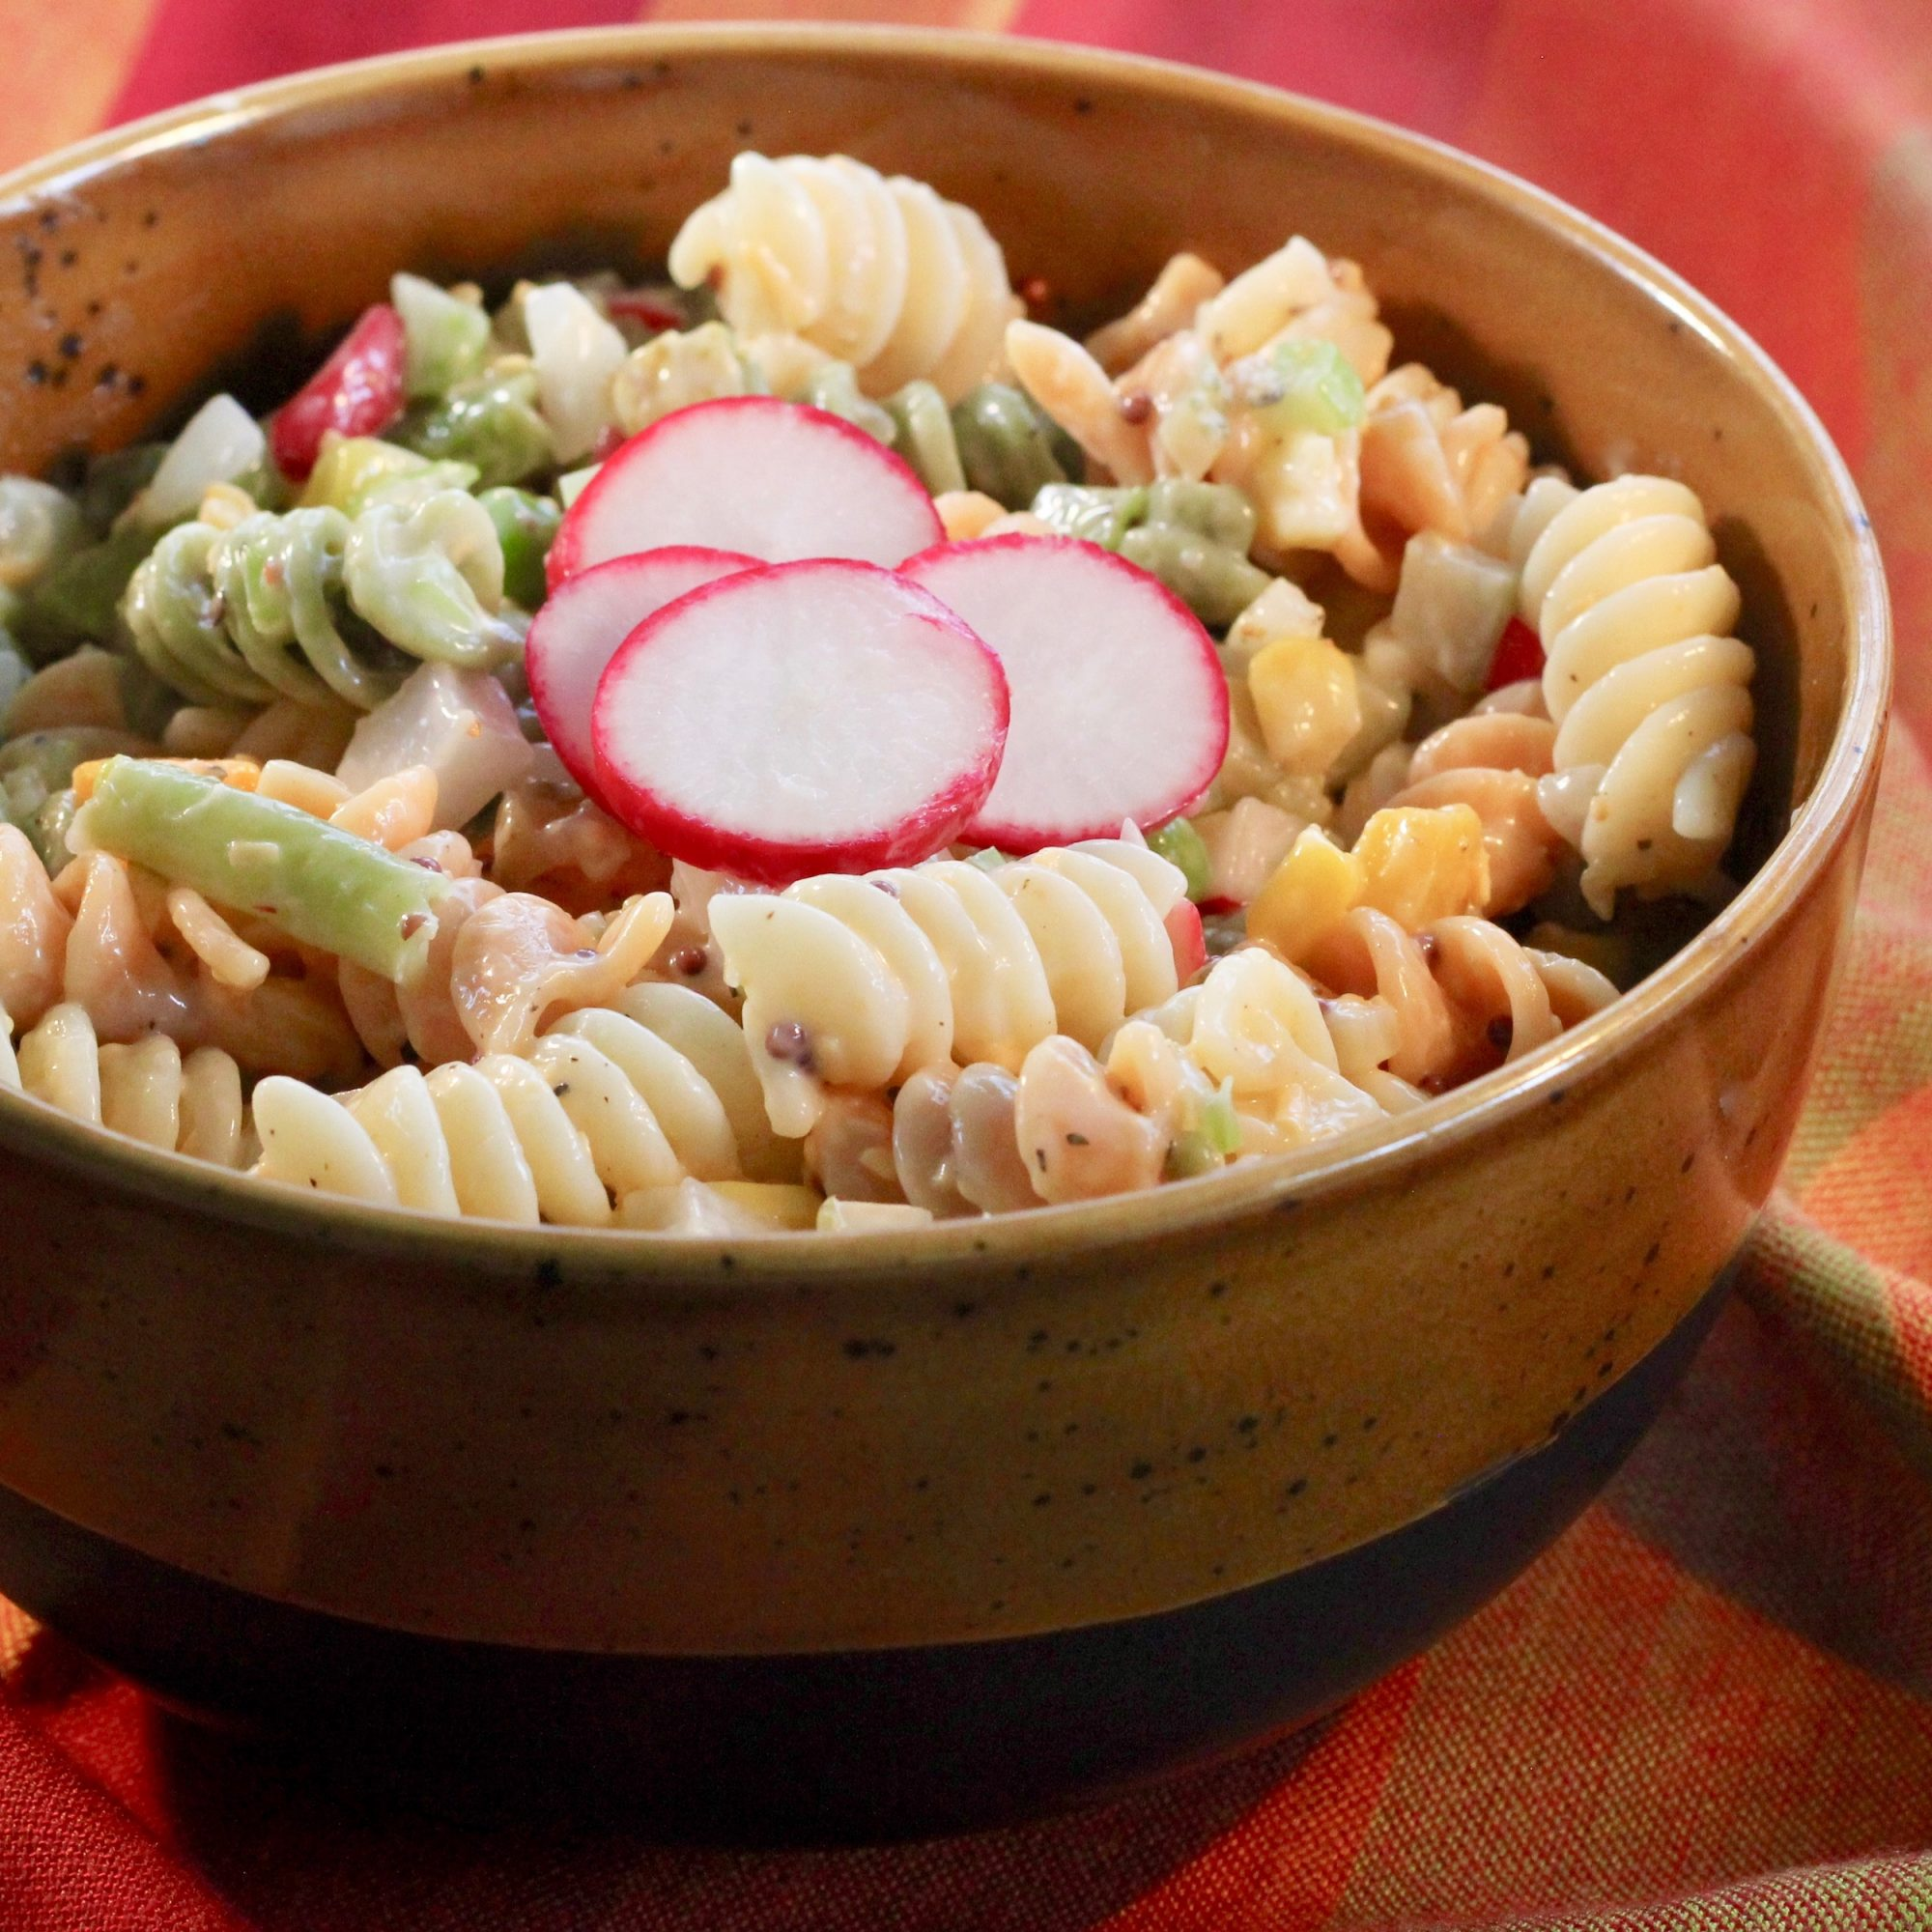 Fiesta Pasta Salad with Dill Pickles